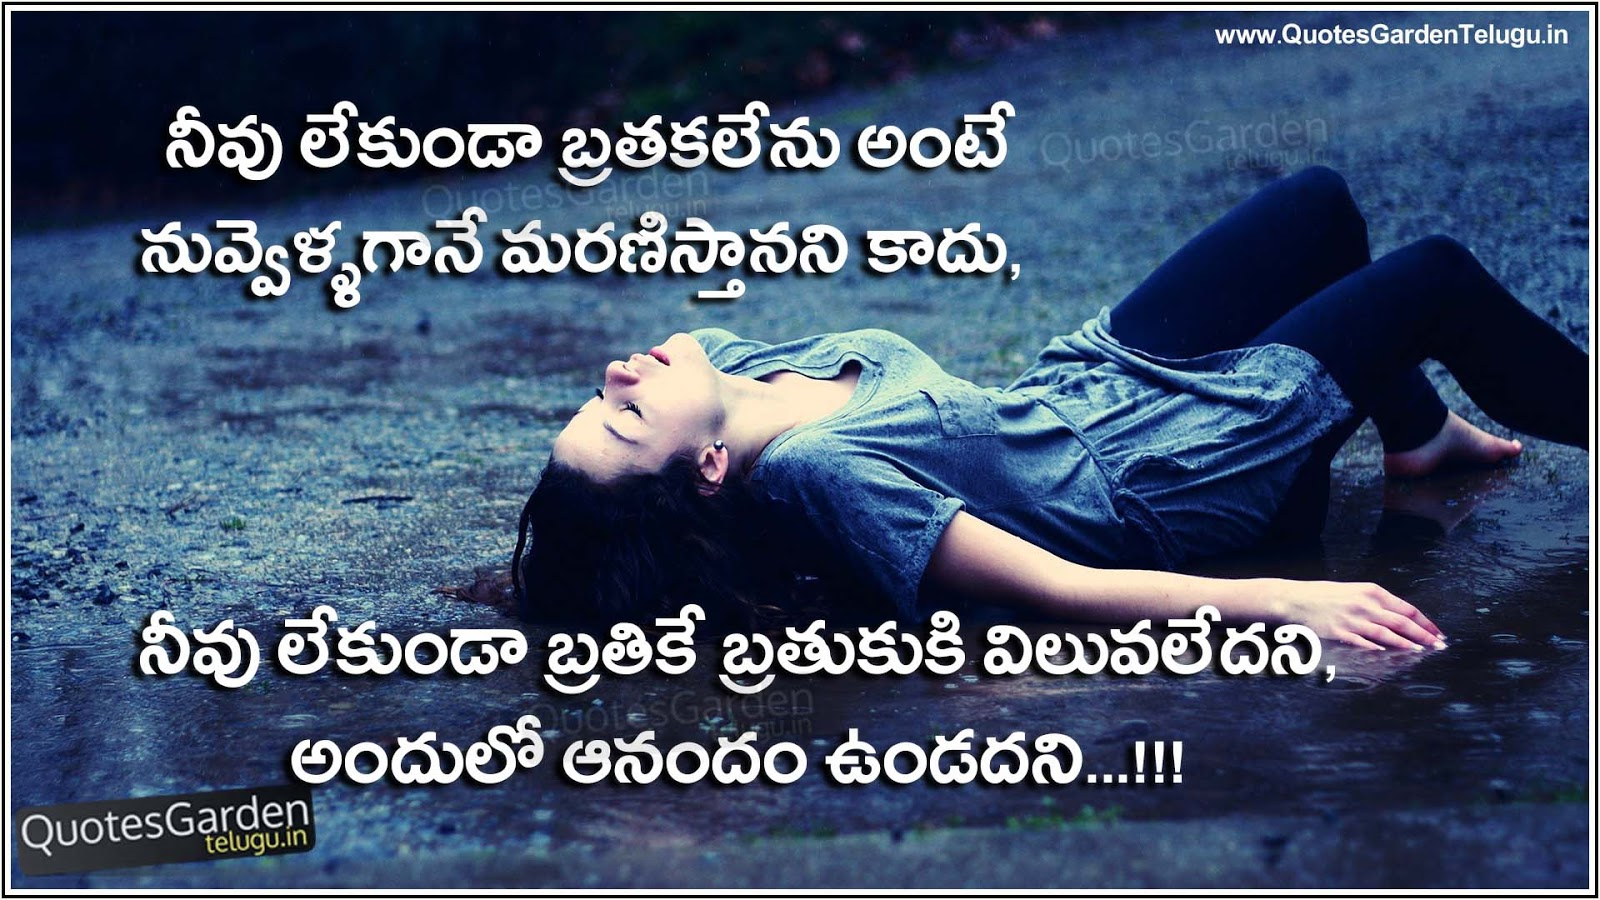 Telugu Love Quotes Mesmerizing Telugu Love Quotations With Beautiful Love Wallpapers  Quotes